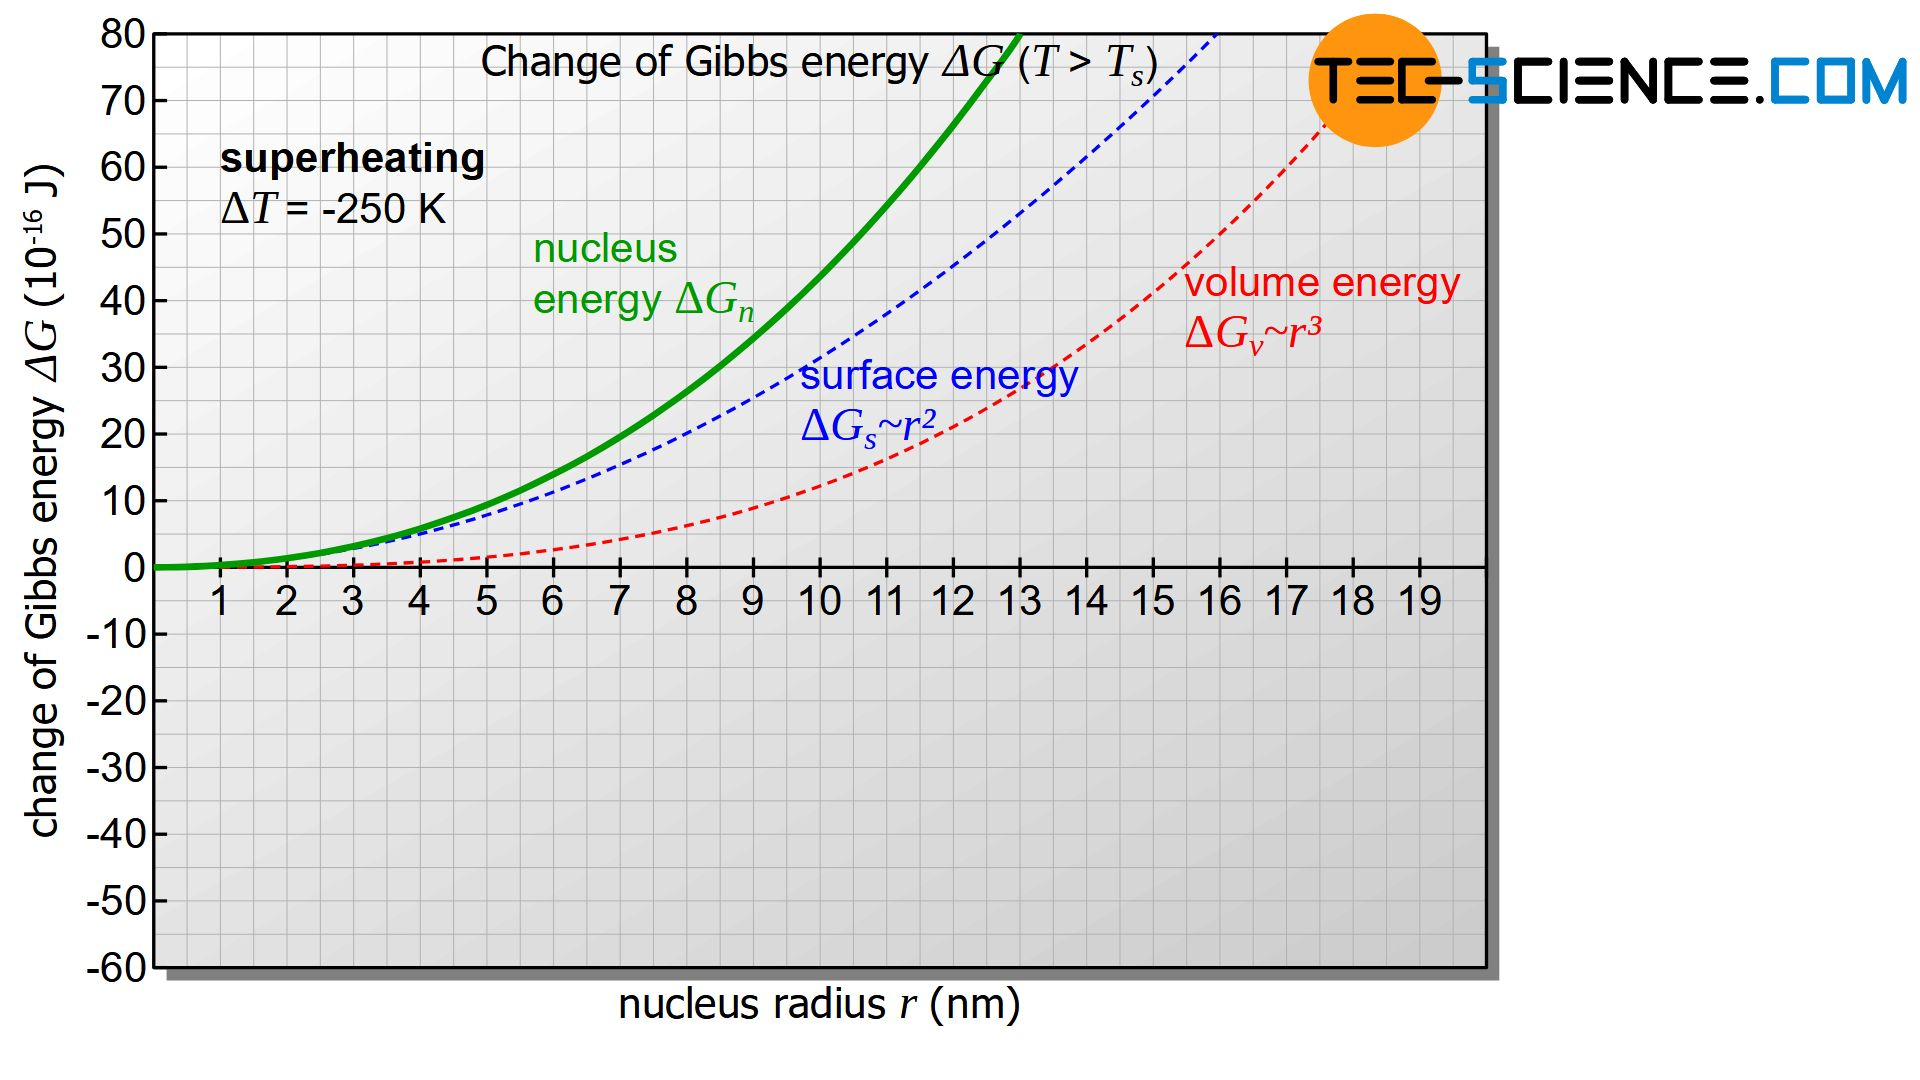 Change of Gibbs energy as a function of the nucleus radius (overheating)